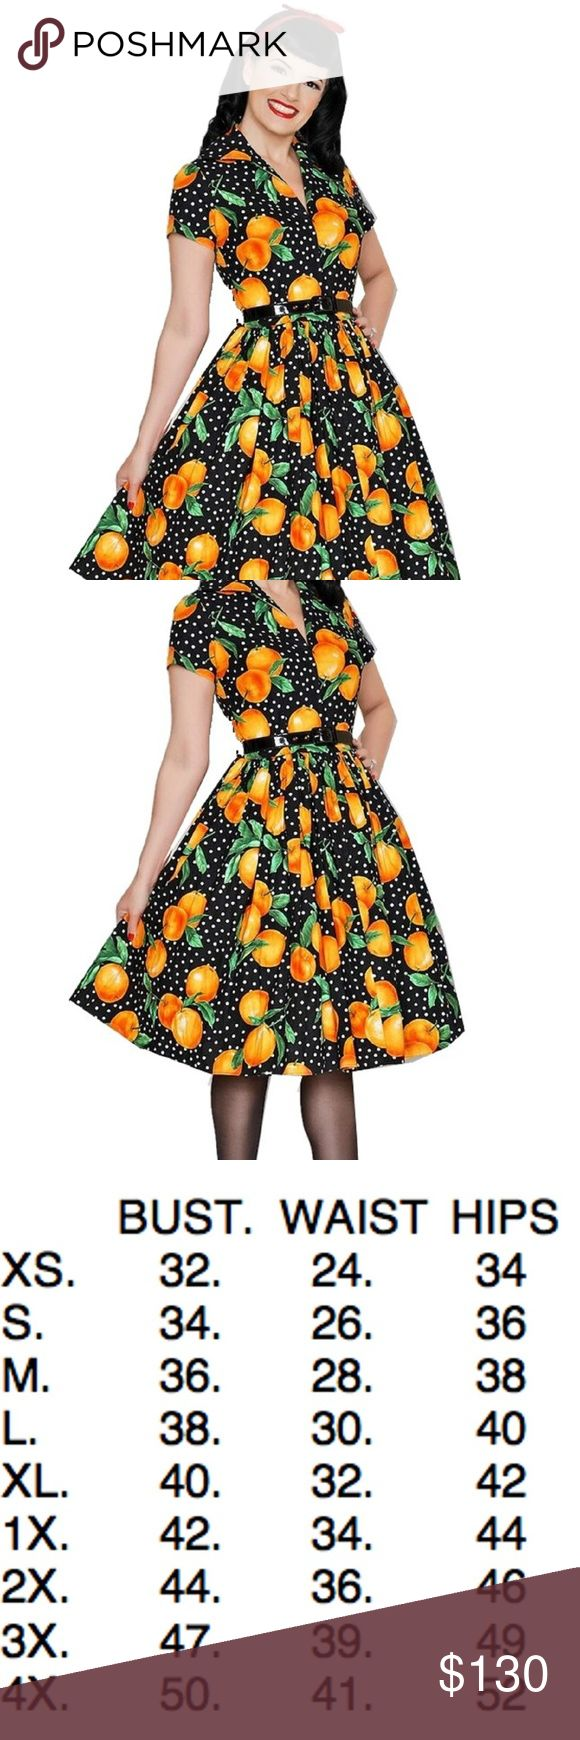 Bernie Dexter Drive In Juicy Oranges Dress If you like Kelly and Lauren you will love this zip front dress!    100% cotton long zipper in back hidden lipstick pockets made in the USA DRY CLEAN or Cold Wash hang dry Bernie Dexter Dresses Midi